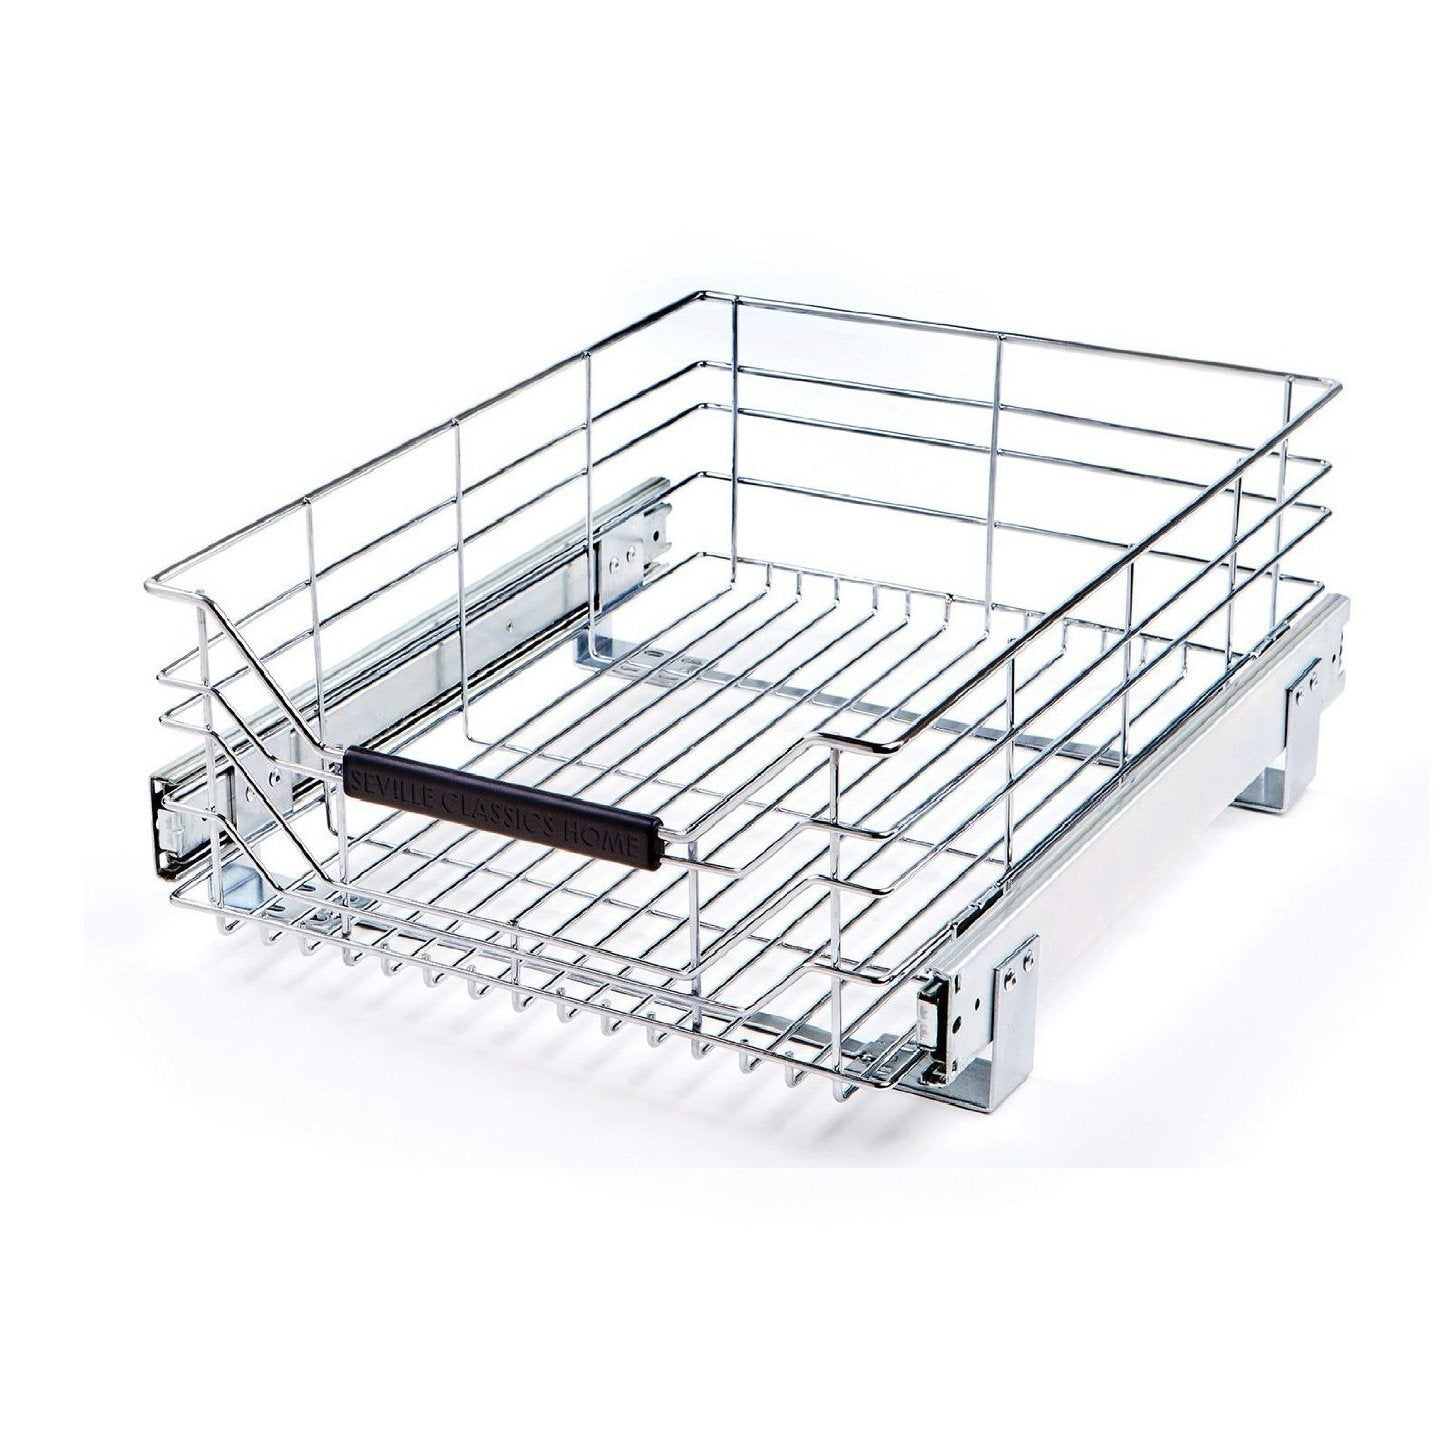 Latest seville classics ultradurable commercial grade pull out sliding steel wire cabinet organizer drawer 14 w x 17 75 d x 6 3 h